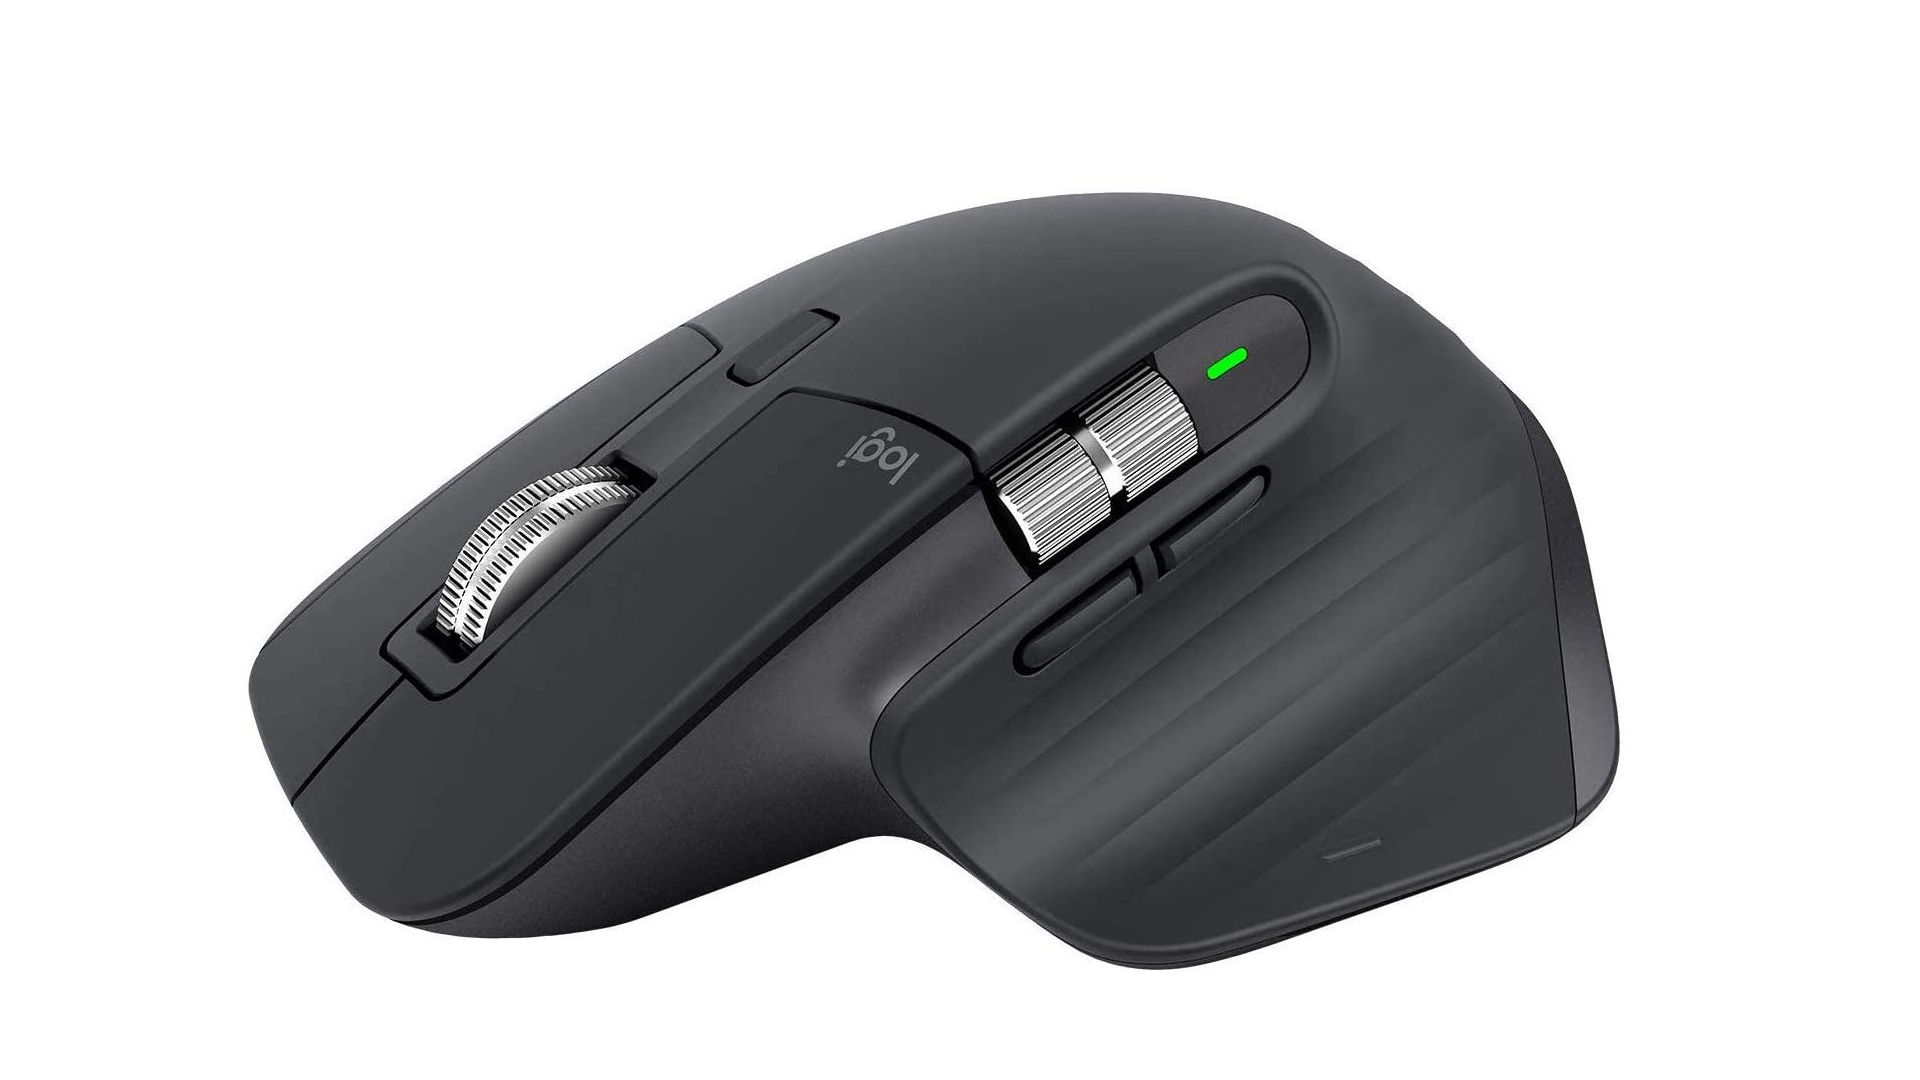 A photo of the Logitech MX Master 3